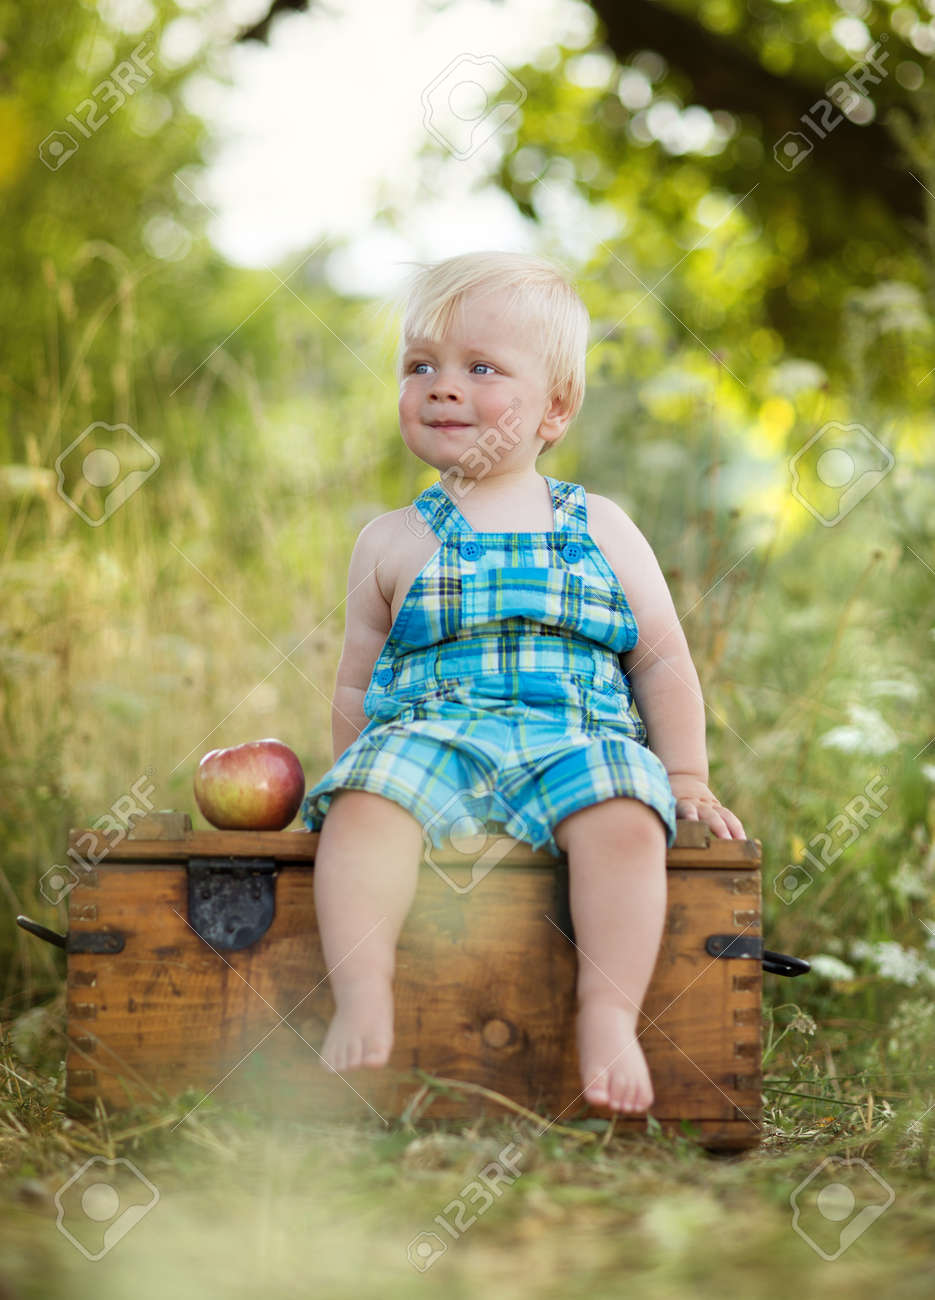 Happy kid playing in a green field Stock Photo - 24258520